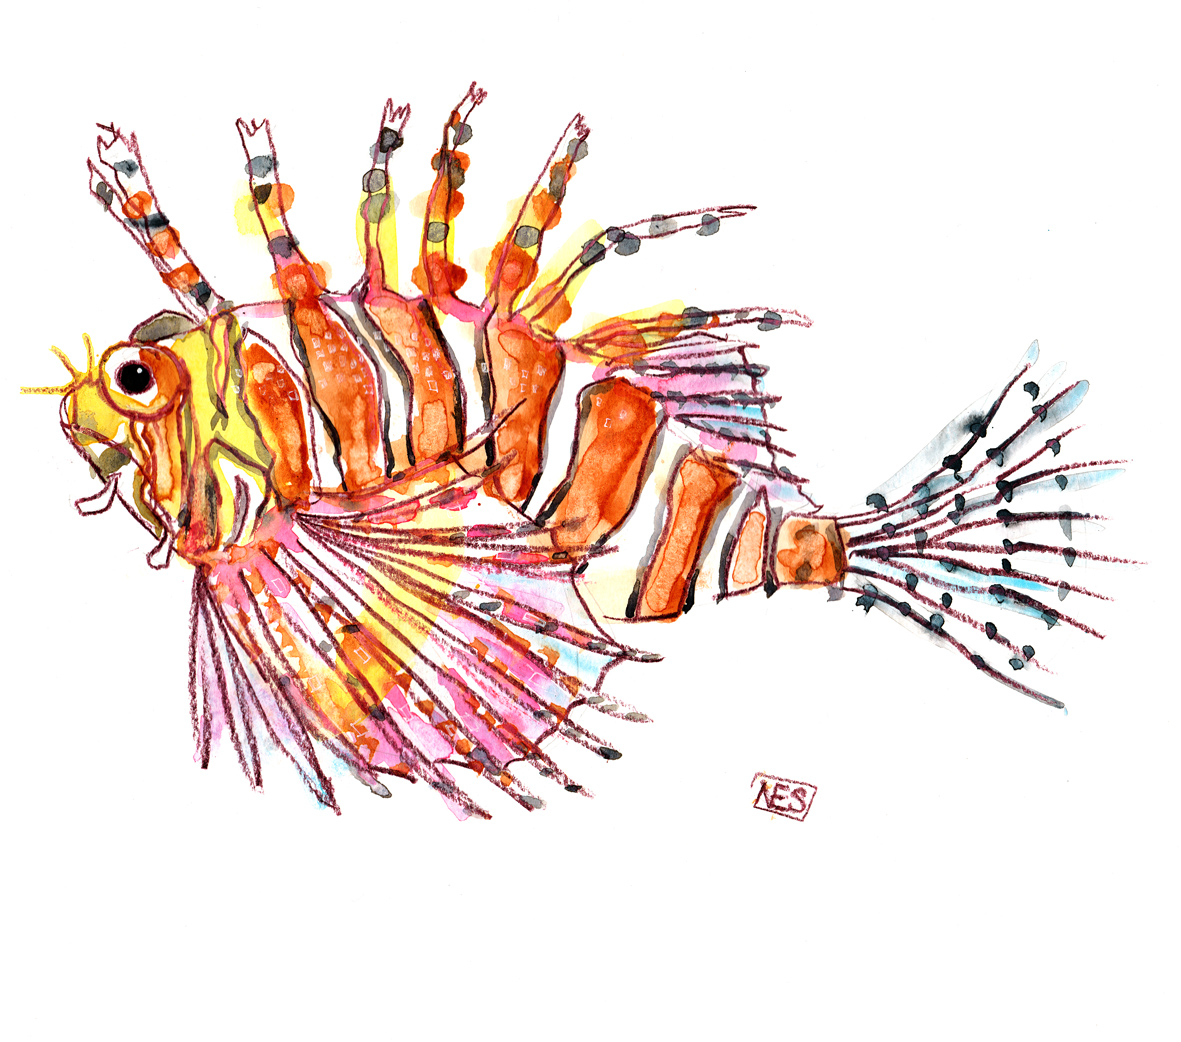 zebra lion fish final watercolour illustration